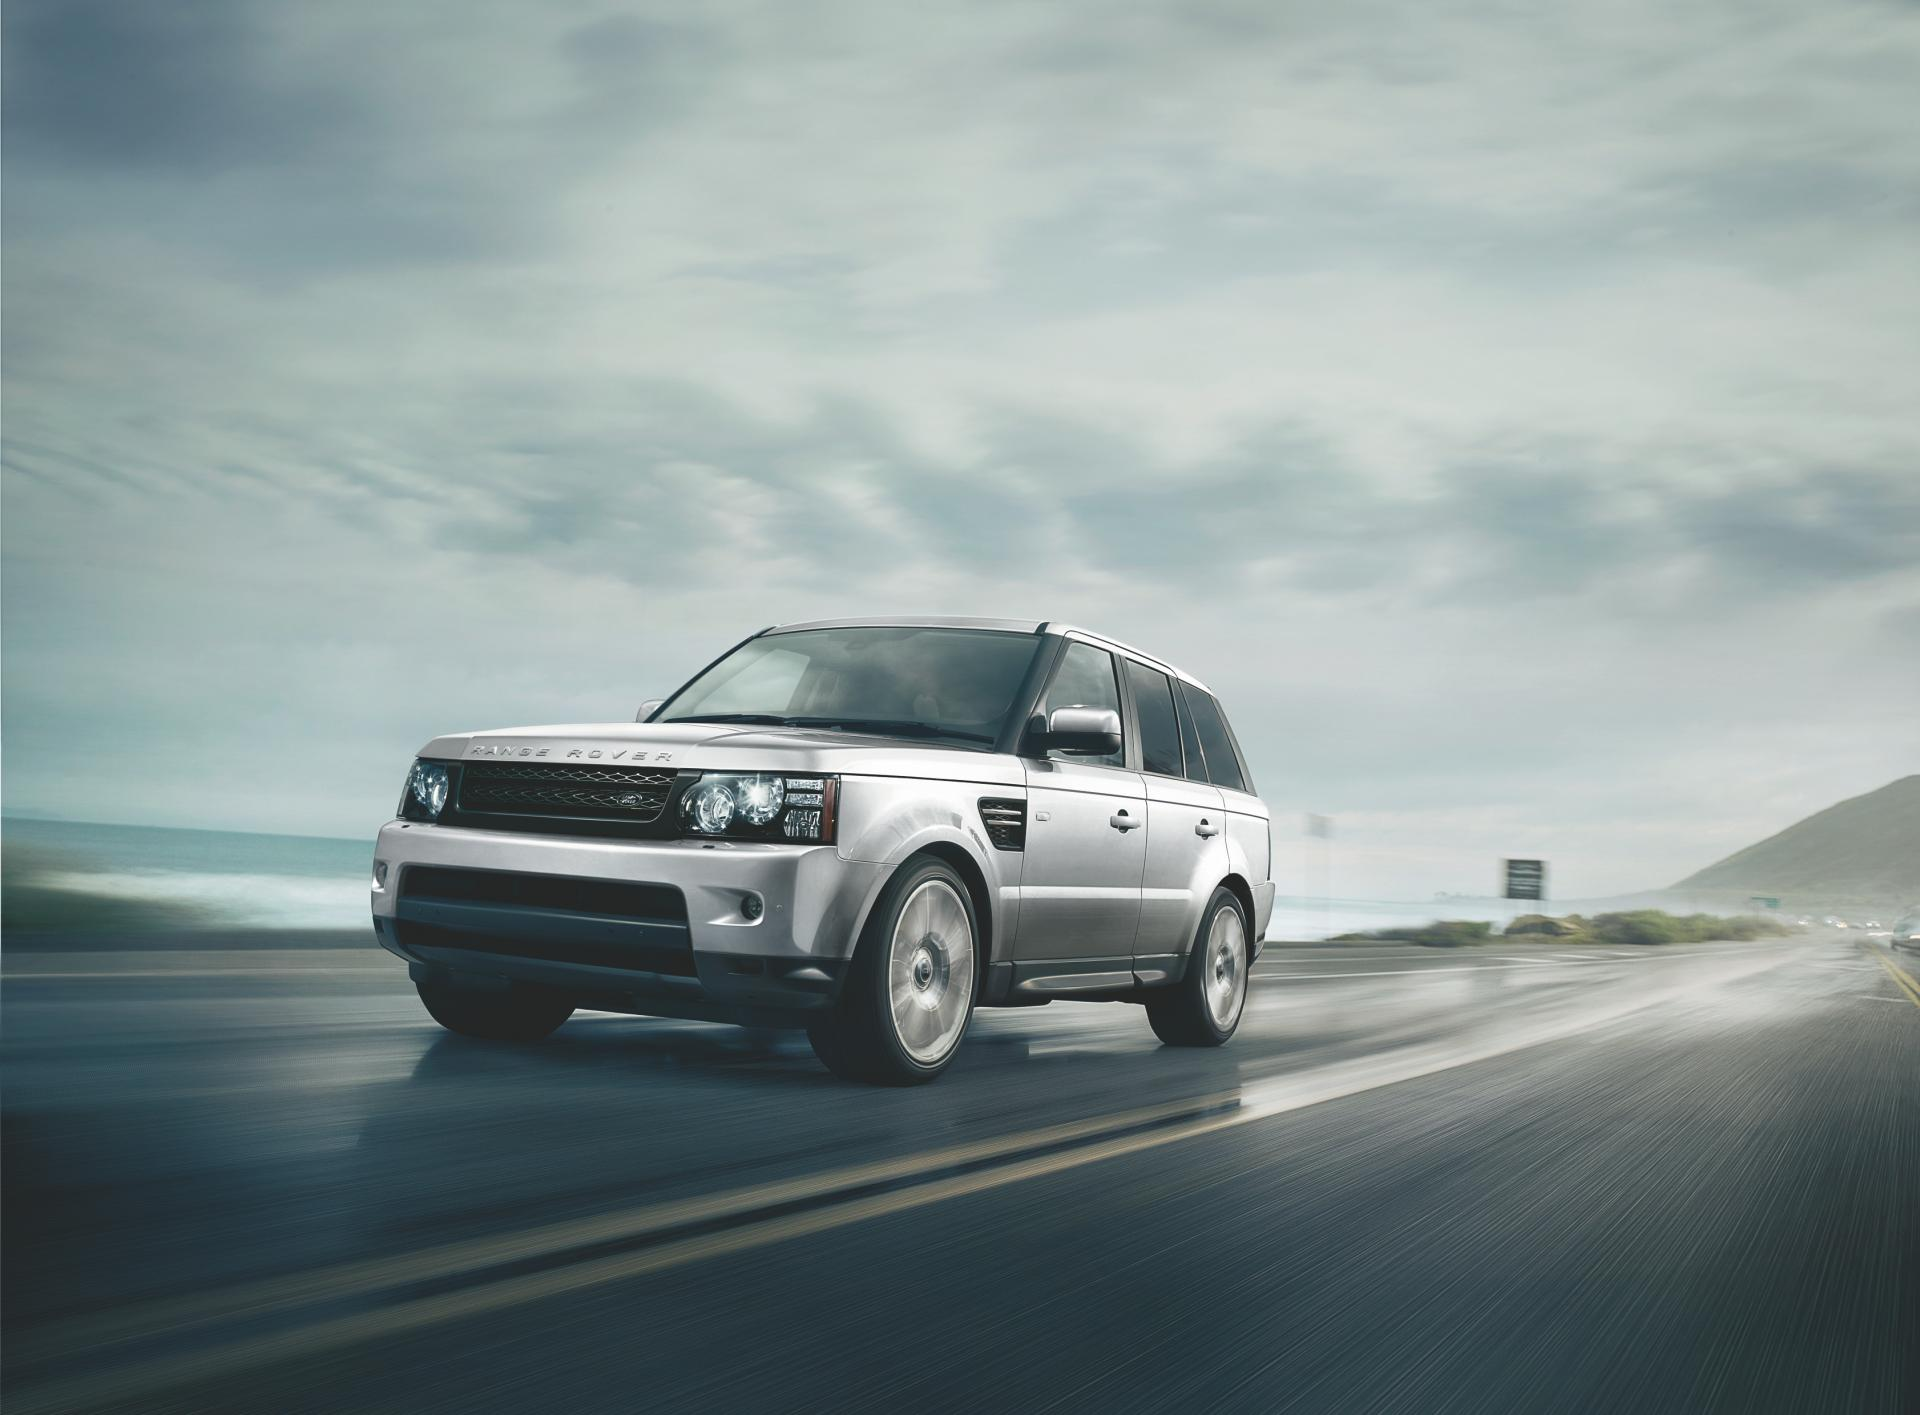 2013 Land Rover Range Rover Sport News and Information